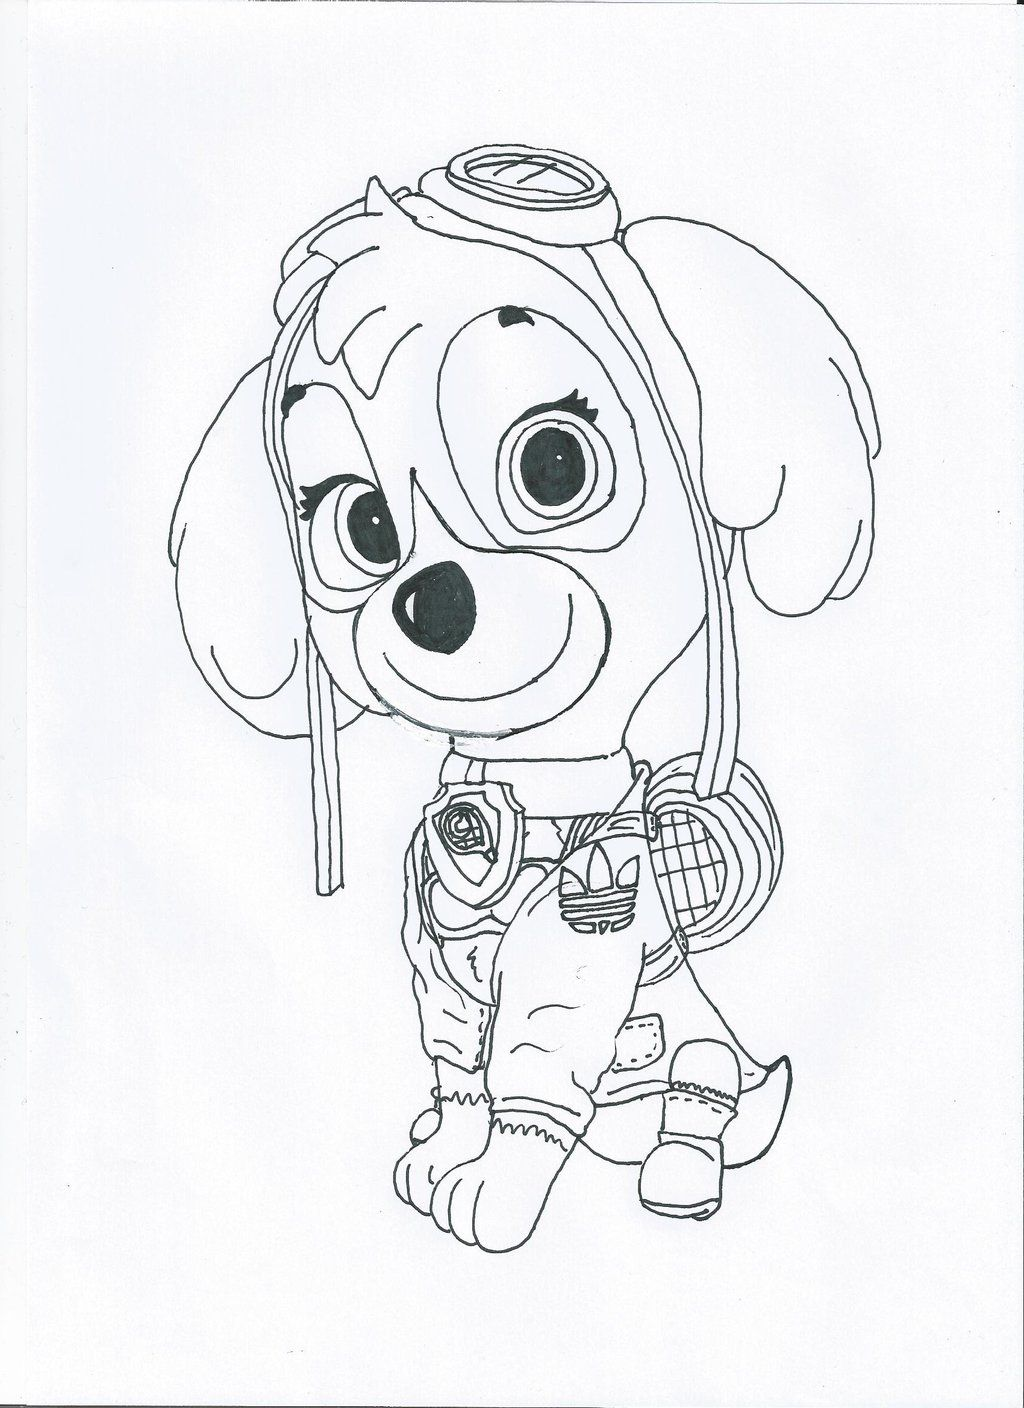 Paw patrol coloring pages robo dog - Paw Patrol Coloring